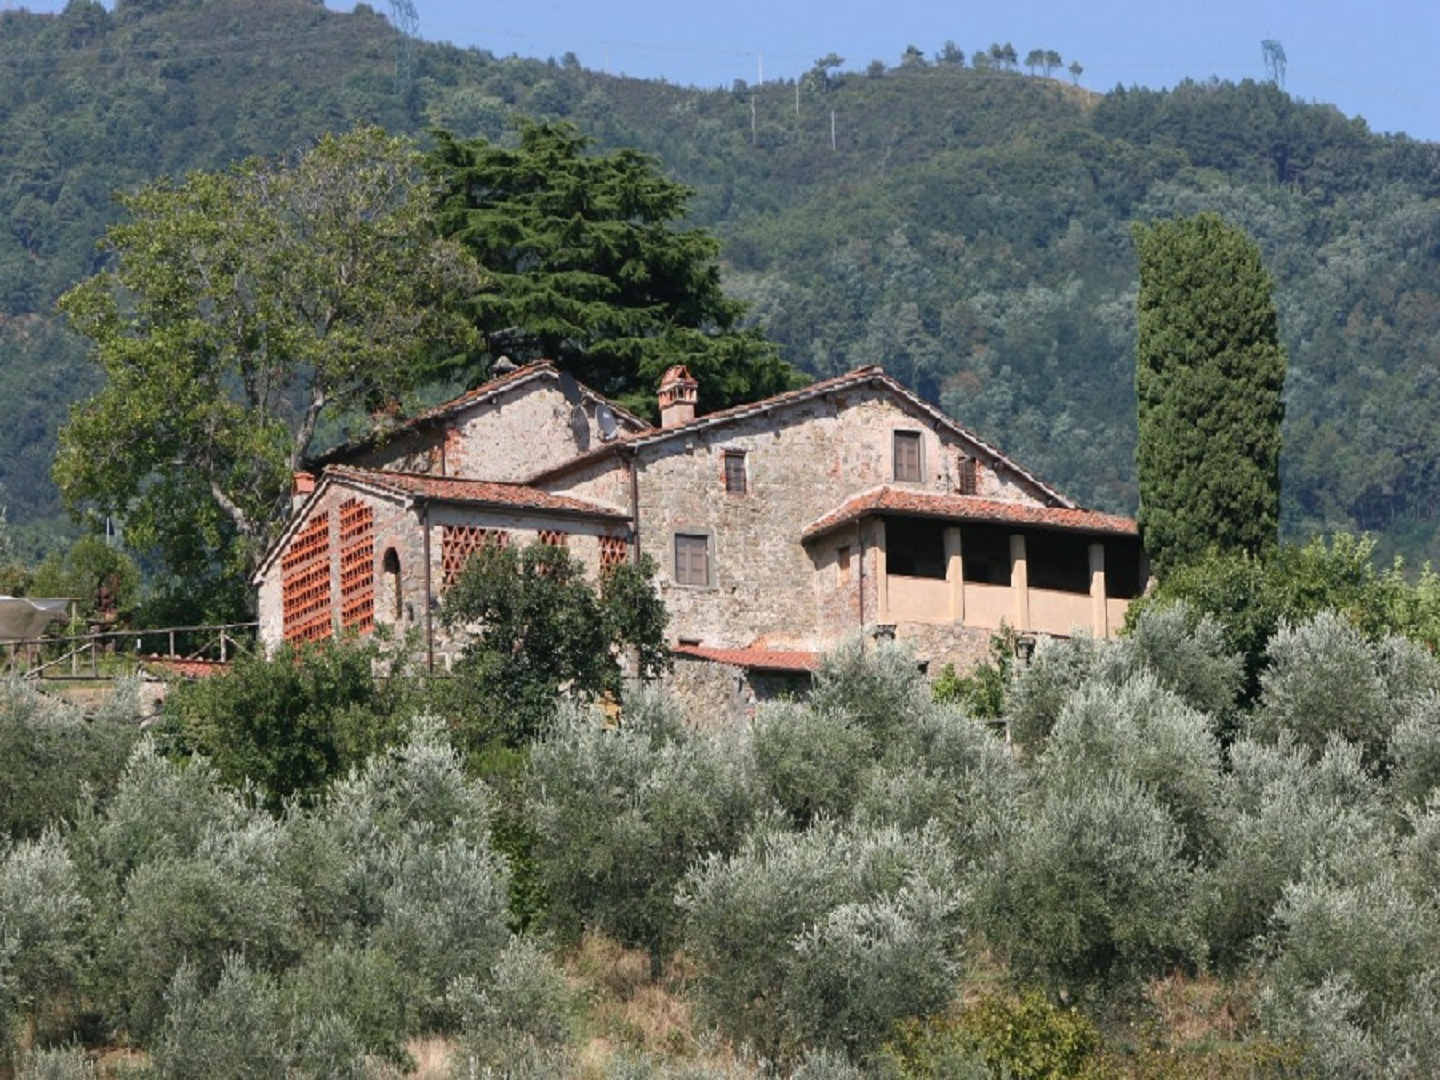 A house with bushes in the background at Loggia del Centone.